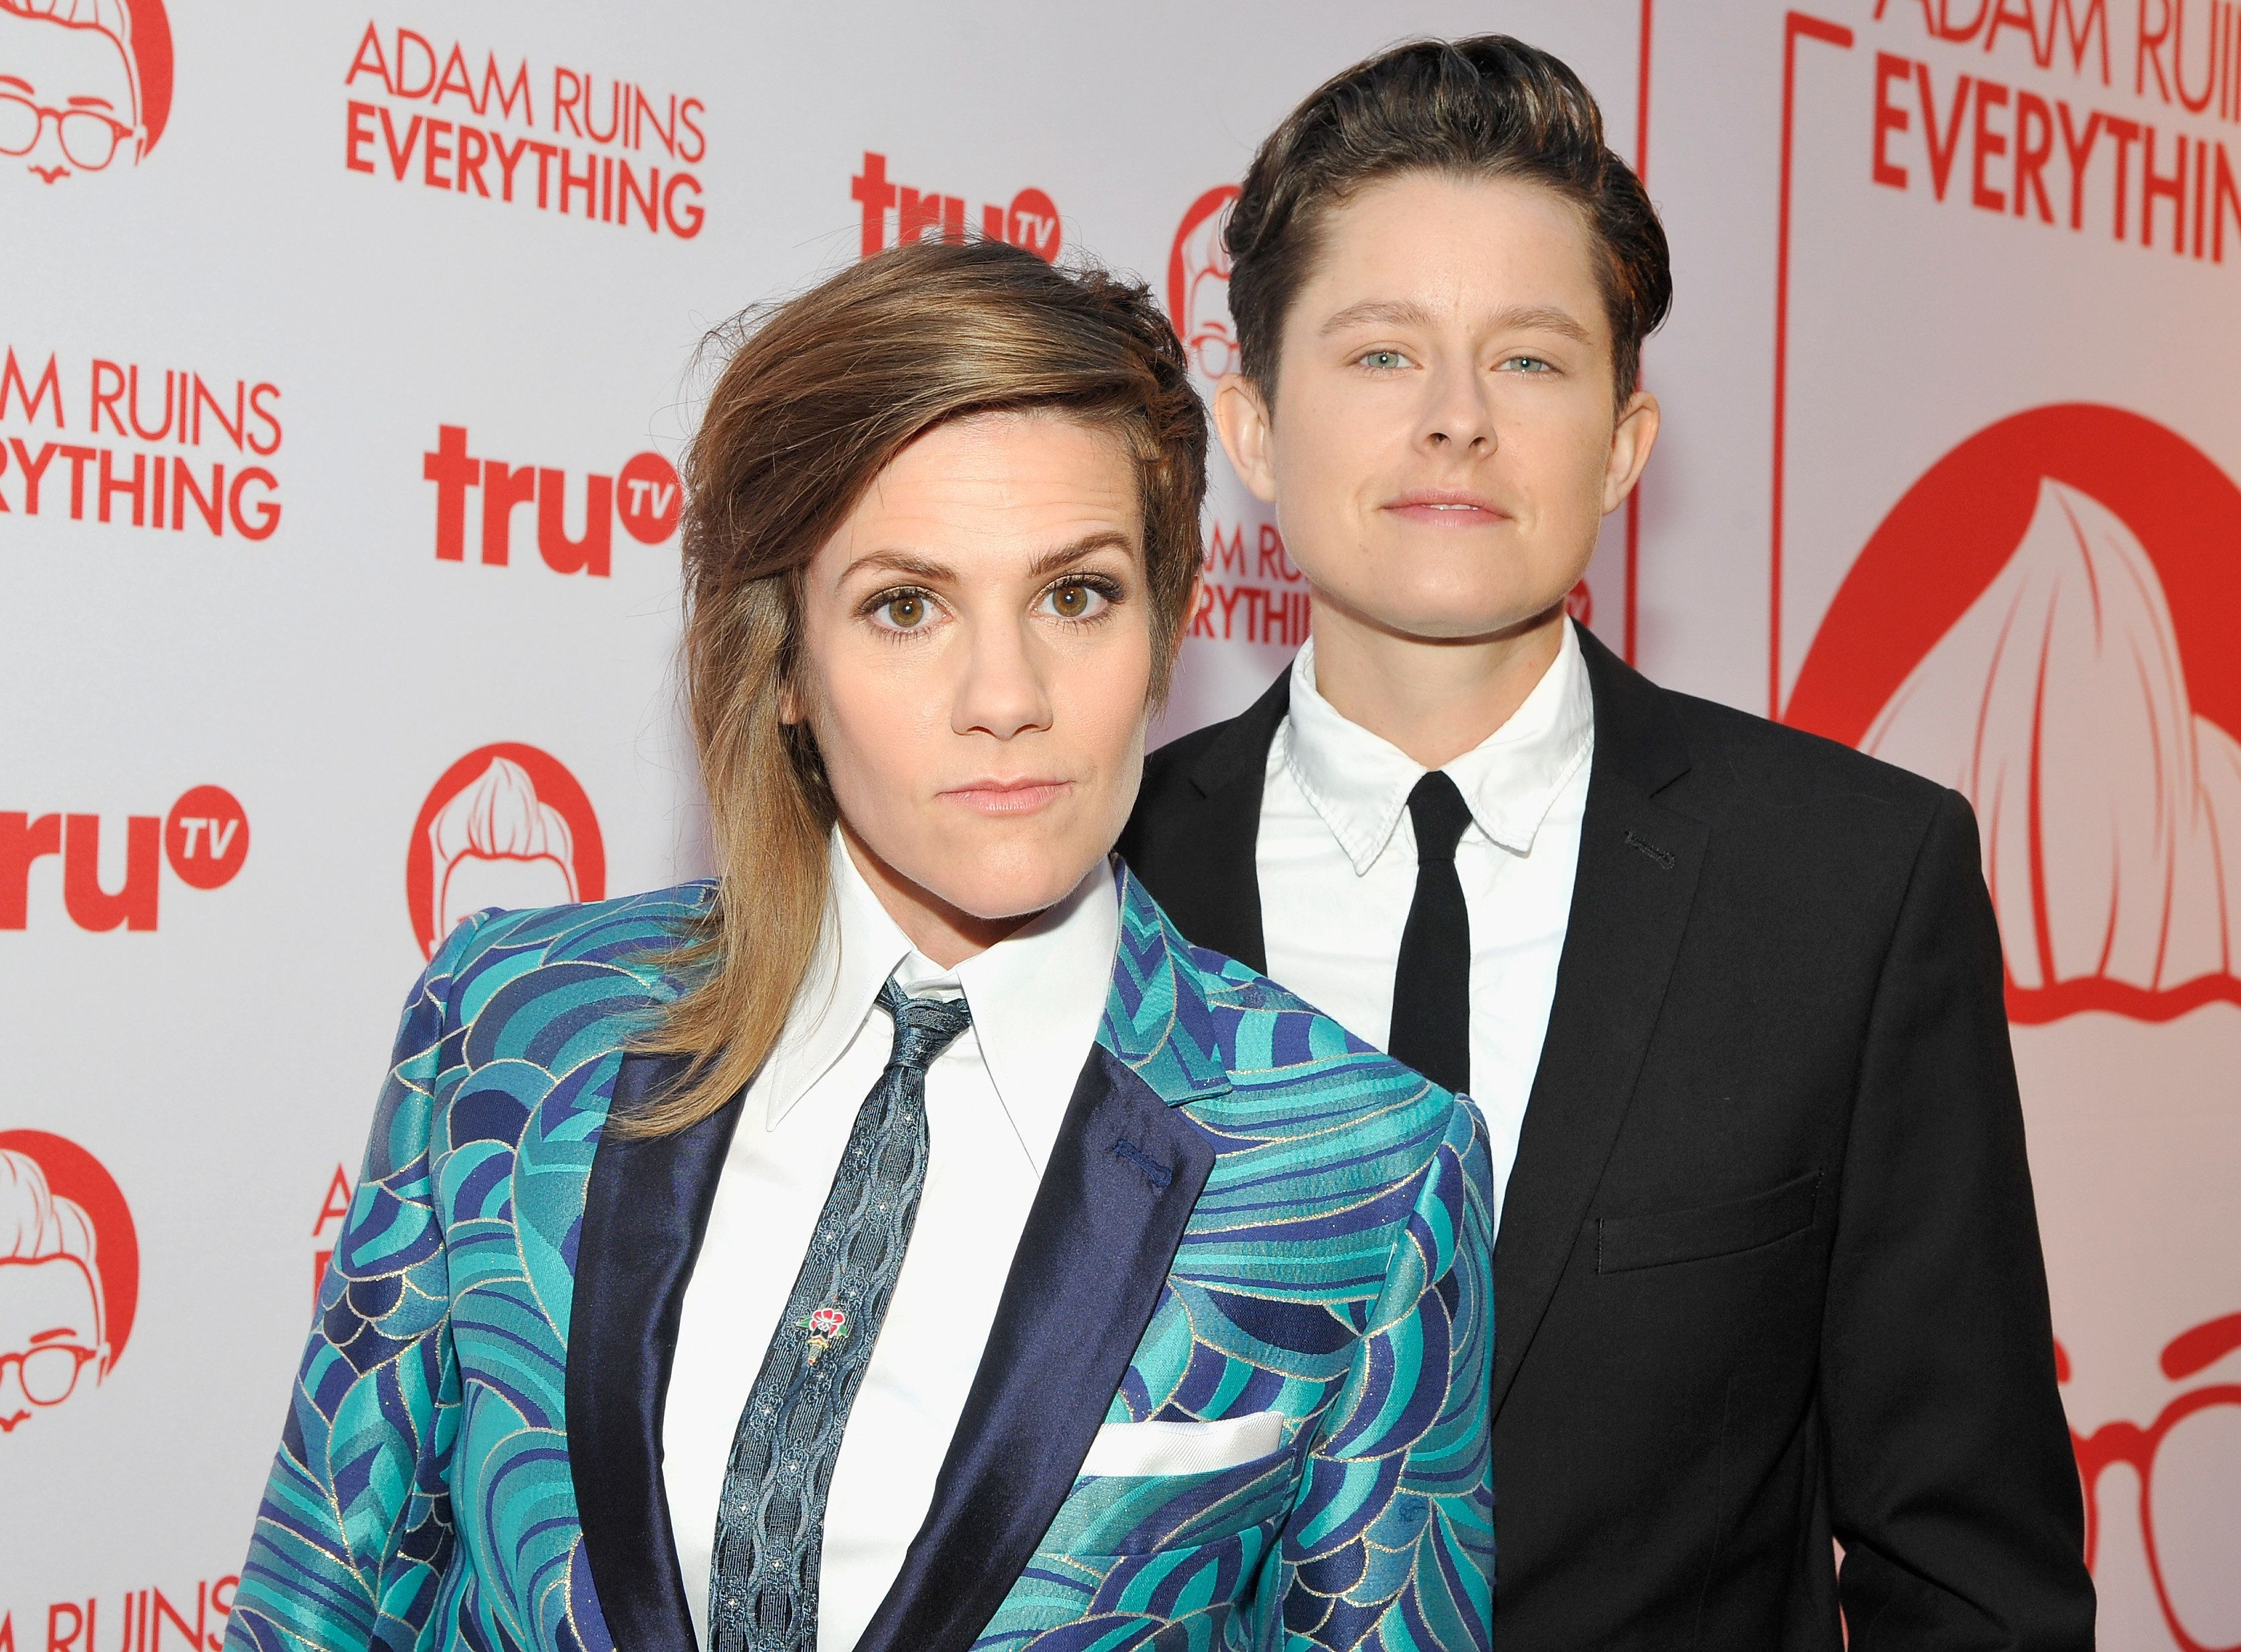 "HOLLYWOOD, CA - AUGUST 18: Actresses Cameron Esposito (L) and Rhea Butcher attend truTV's ""Adam Ruins Everything"" Premiere Screening Event on August 18 at The Redbury Hotel on August 18, 2016 in Hollywood, California. 26331_001  (Photo by John Sciulli/WireImage)"